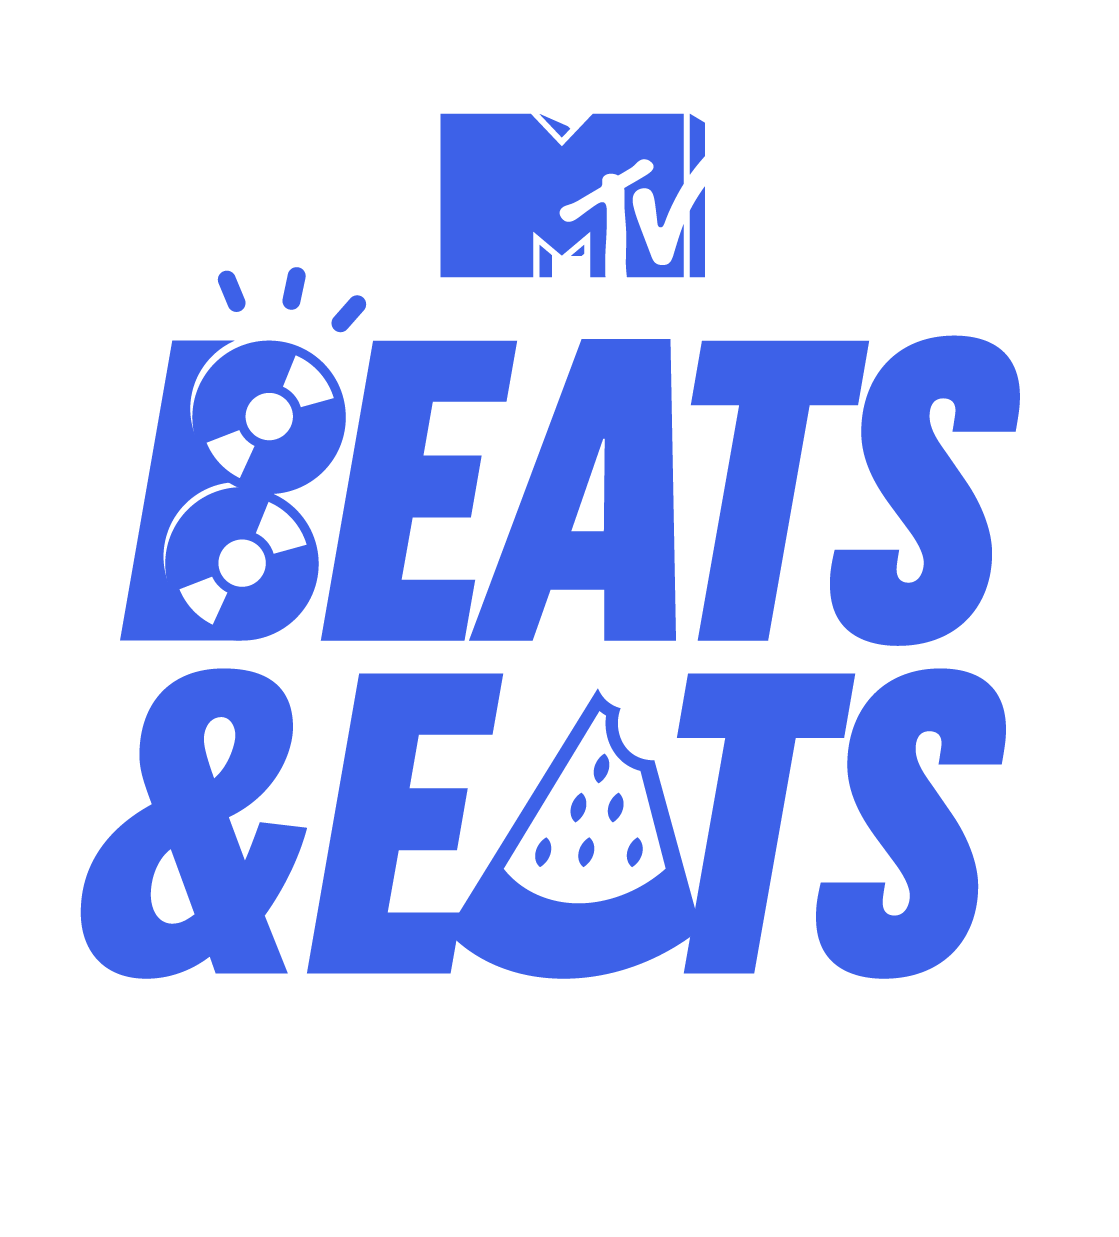 mtv beats eats festival is returning this year we 39 re. Black Bedroom Furniture Sets. Home Design Ideas